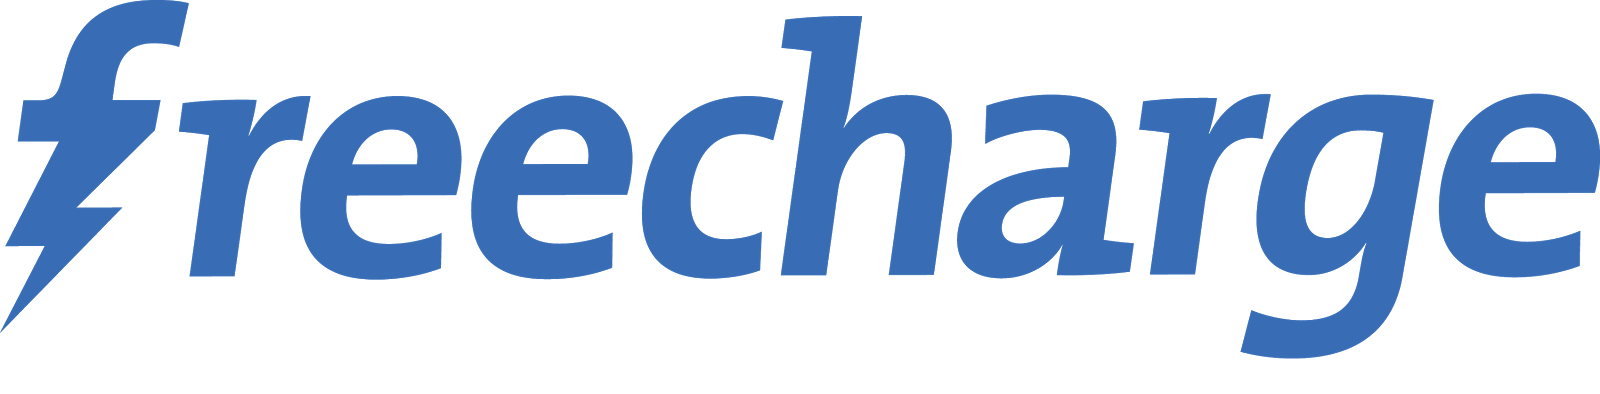 Image result for Free Charge logo